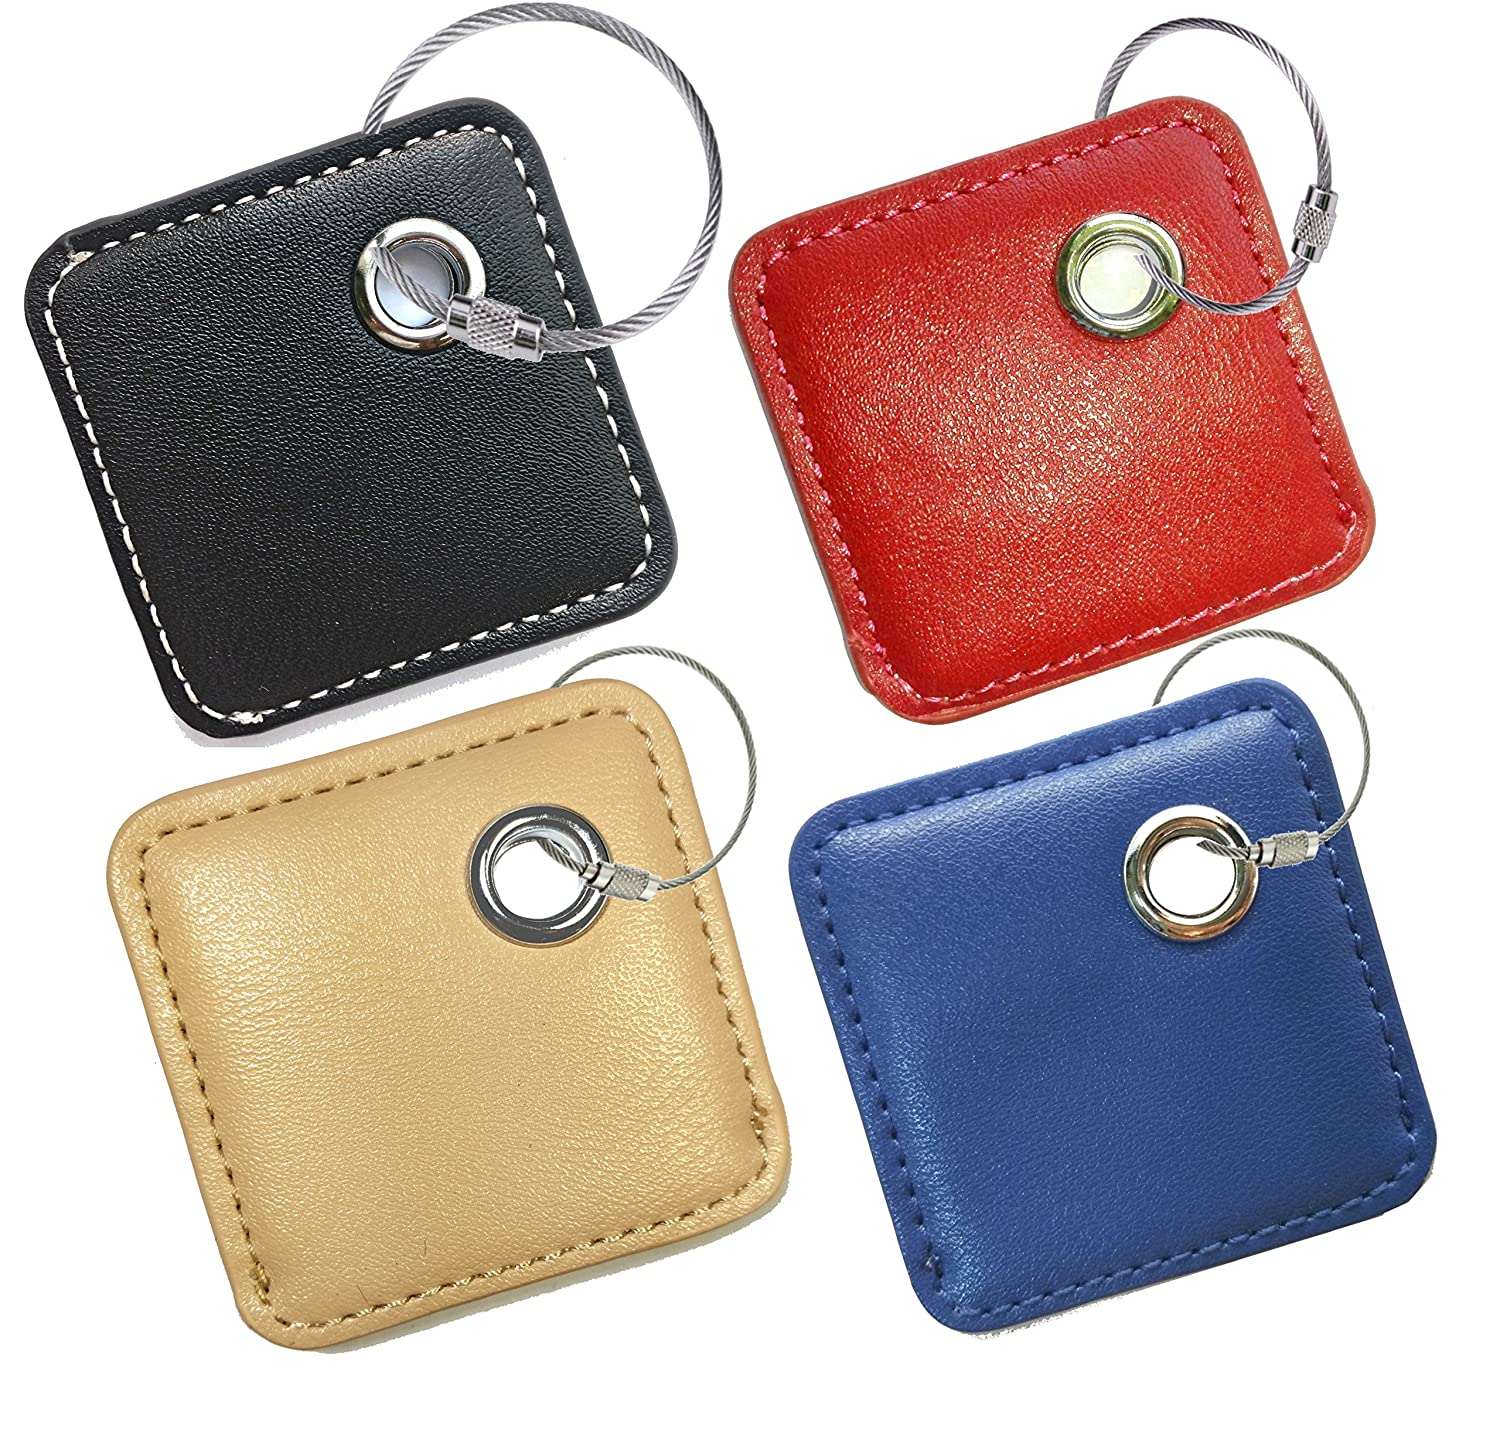 amazoncom fashion key chain cover accessories for tile skin phone finder key finder item finder only case no tracker included office products